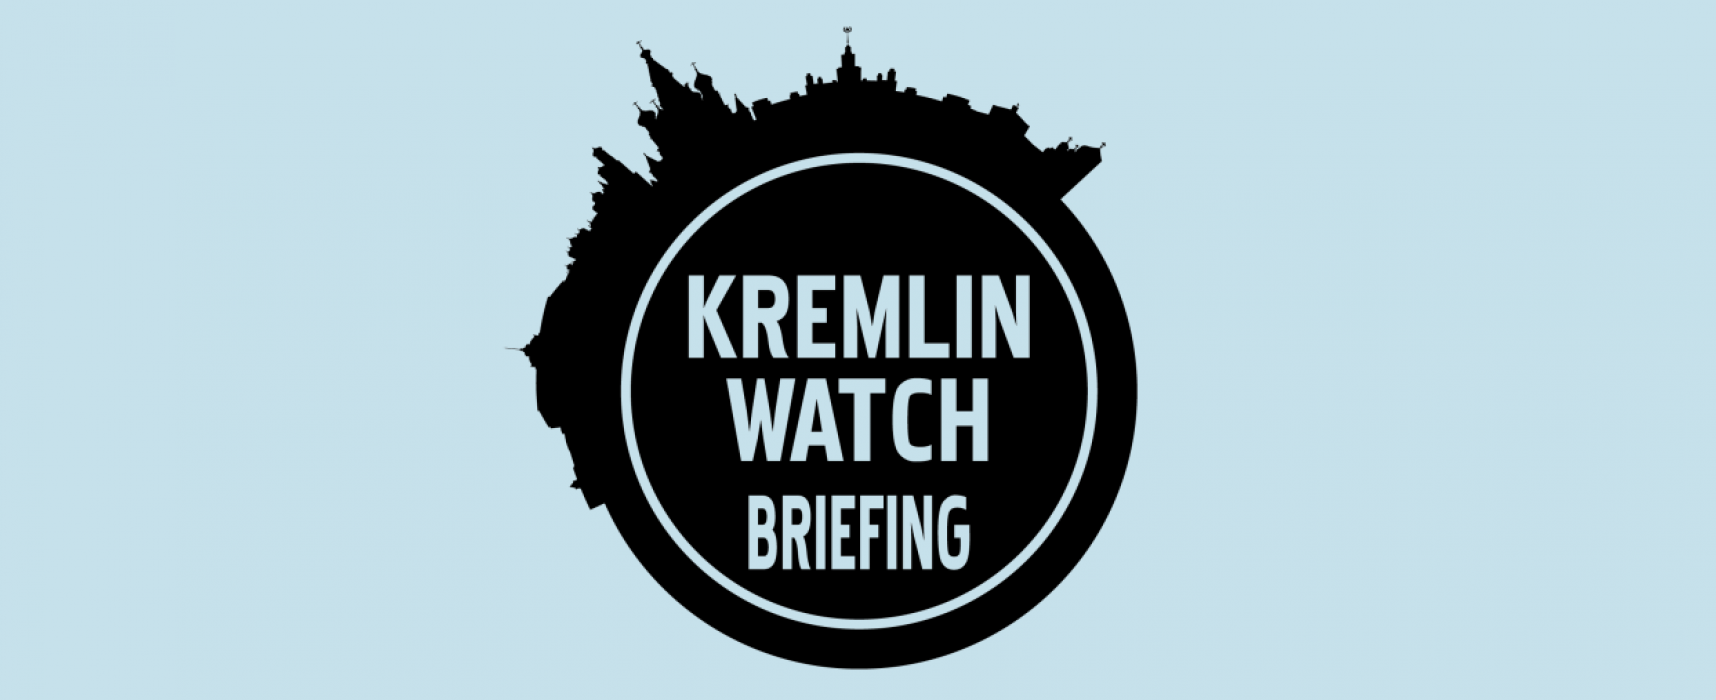 Kremlin Watch Briefing. October 31